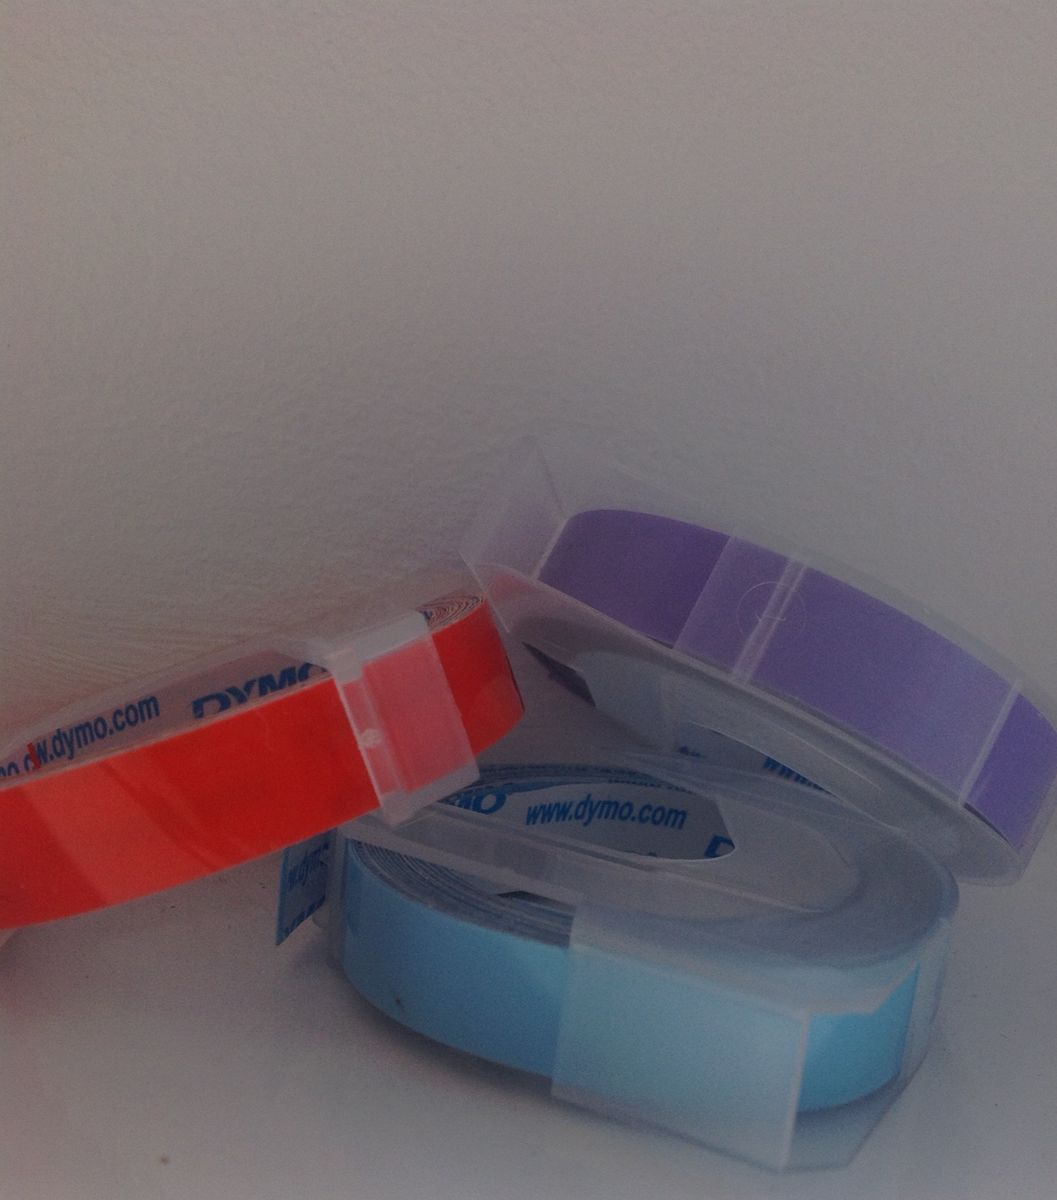 Dymo Tape 9mm x 3 metres - LILAC PURPLE, ORANGE or PASTEL SKY - product images  of